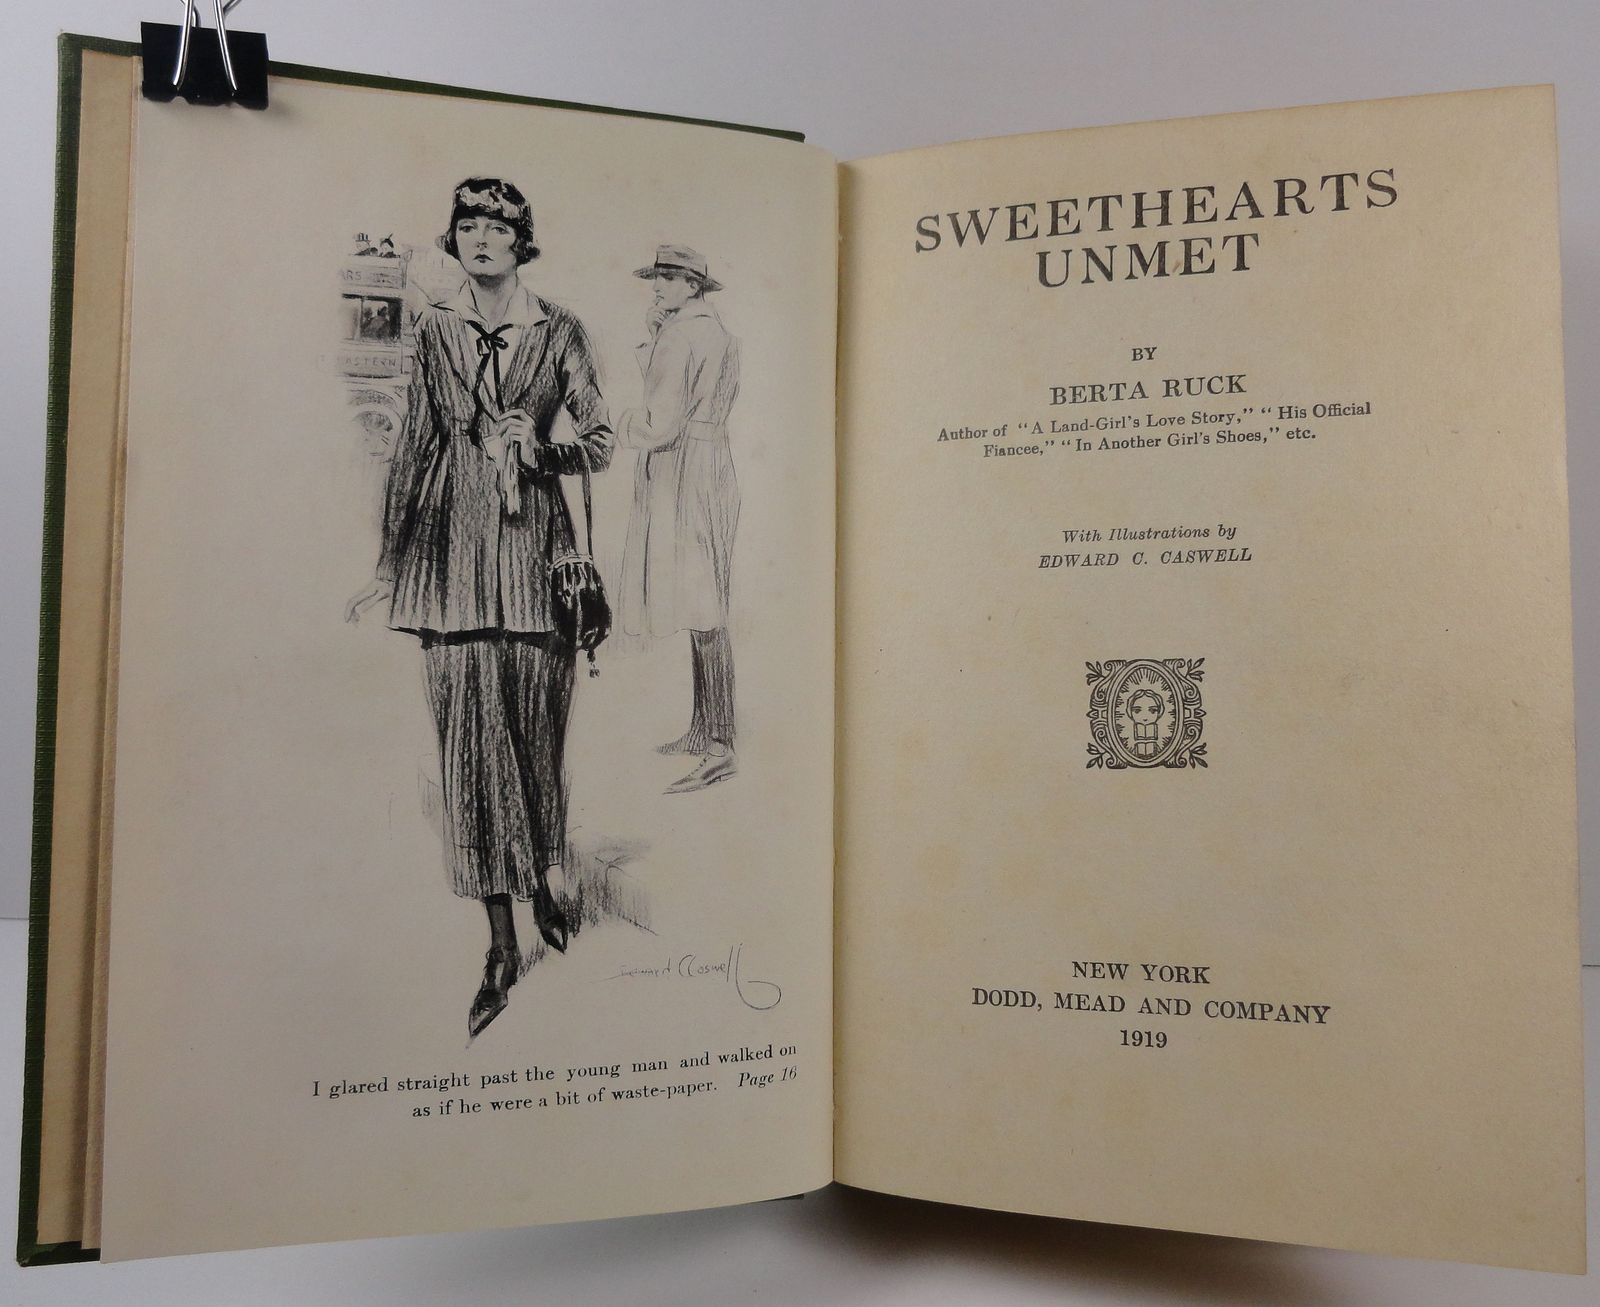 Sweethearts Unmet by Berta Ruck 1919 Dodd Mead Caswell Illus